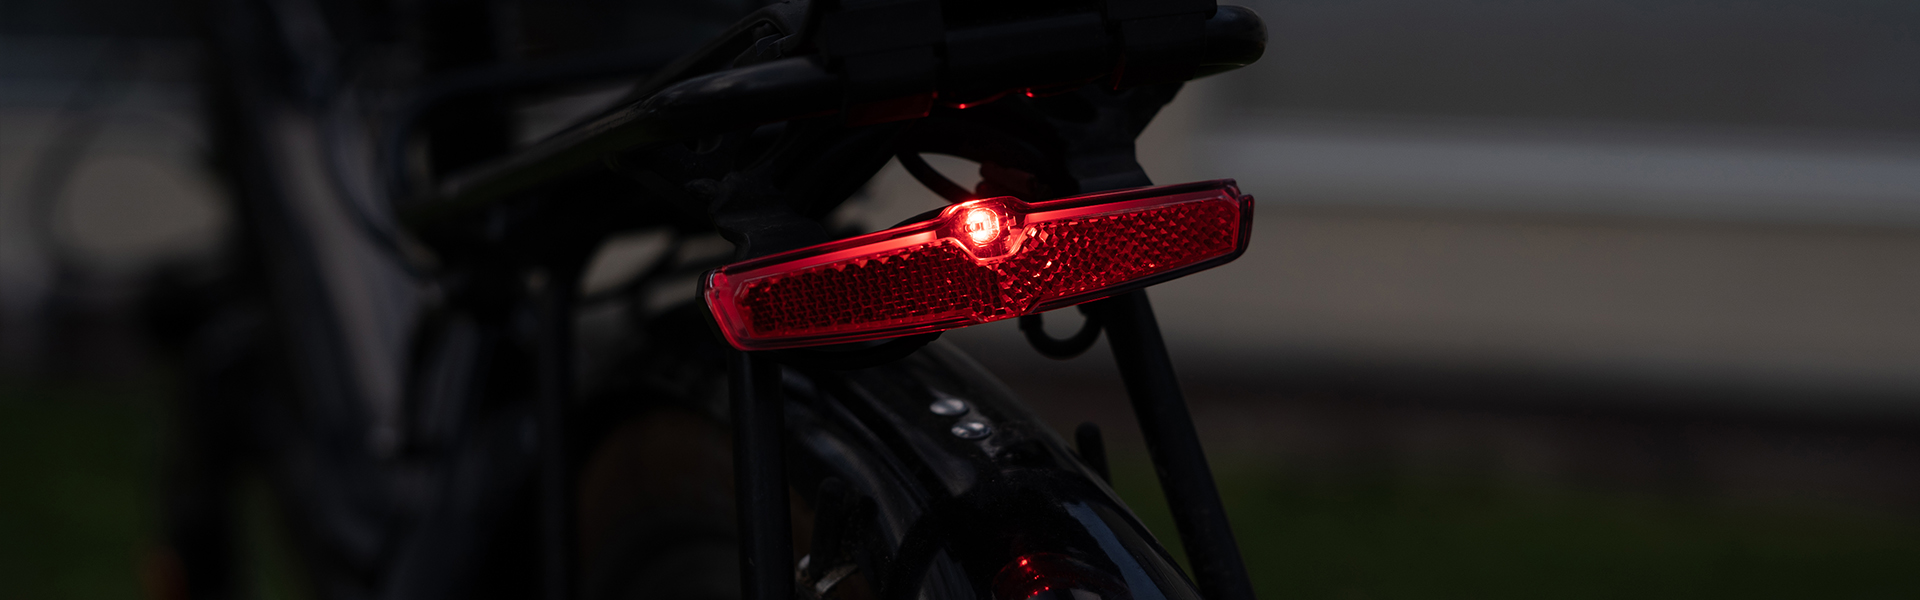 Sate-lite CREE ebike light ISO6742-1 AS GB BS eletric bike tail light with ECE reflector mount on rear render